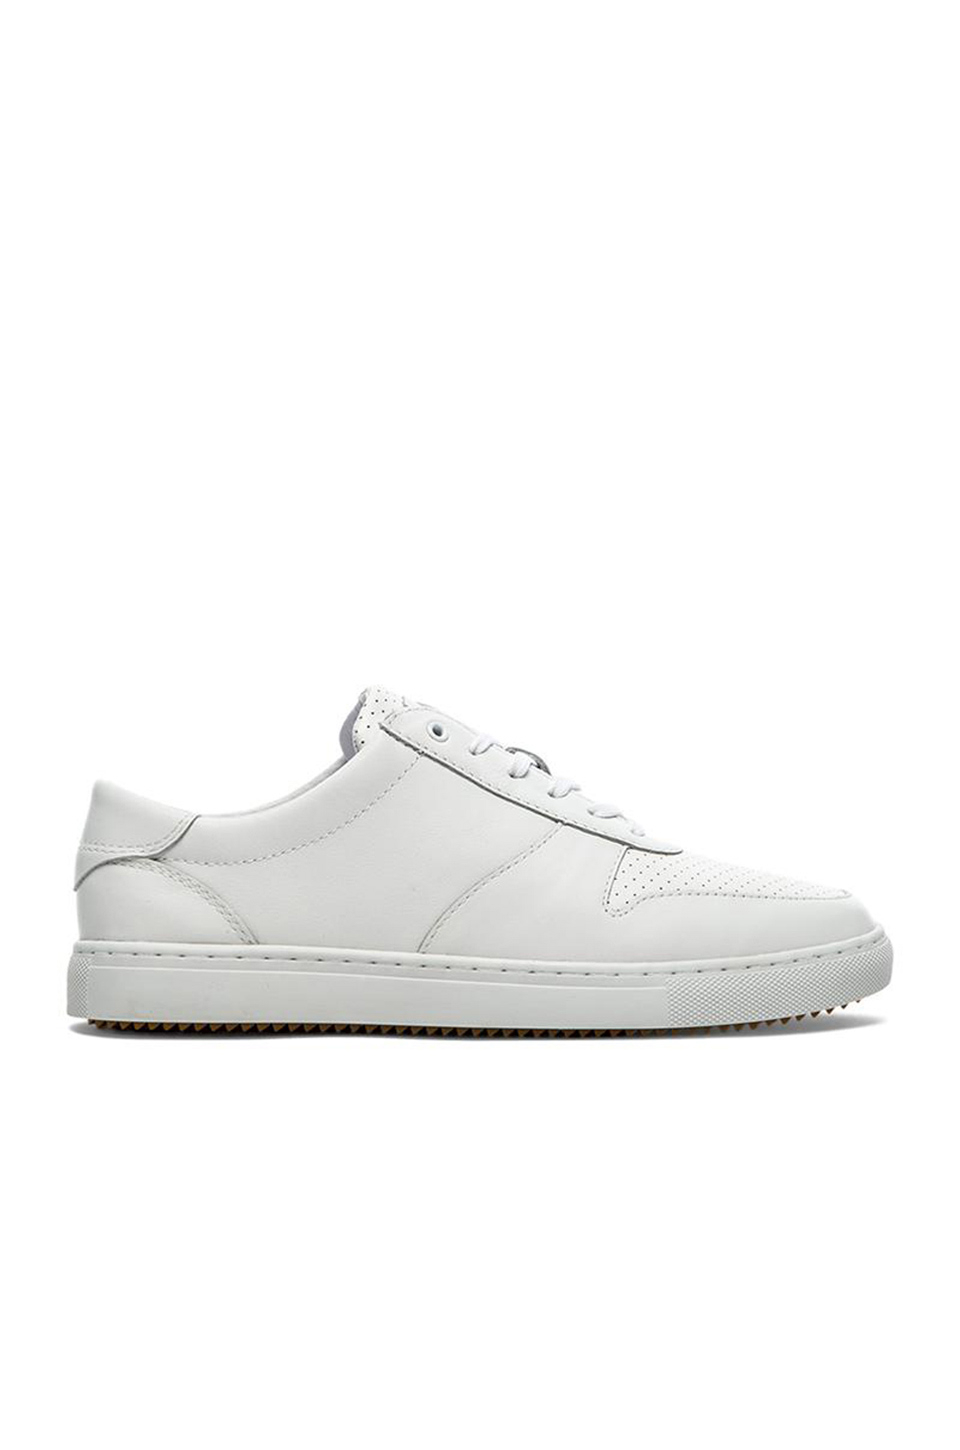 FOOTWEAR - Low-tops & sneakers Clae View For Sale 8atfzxHf